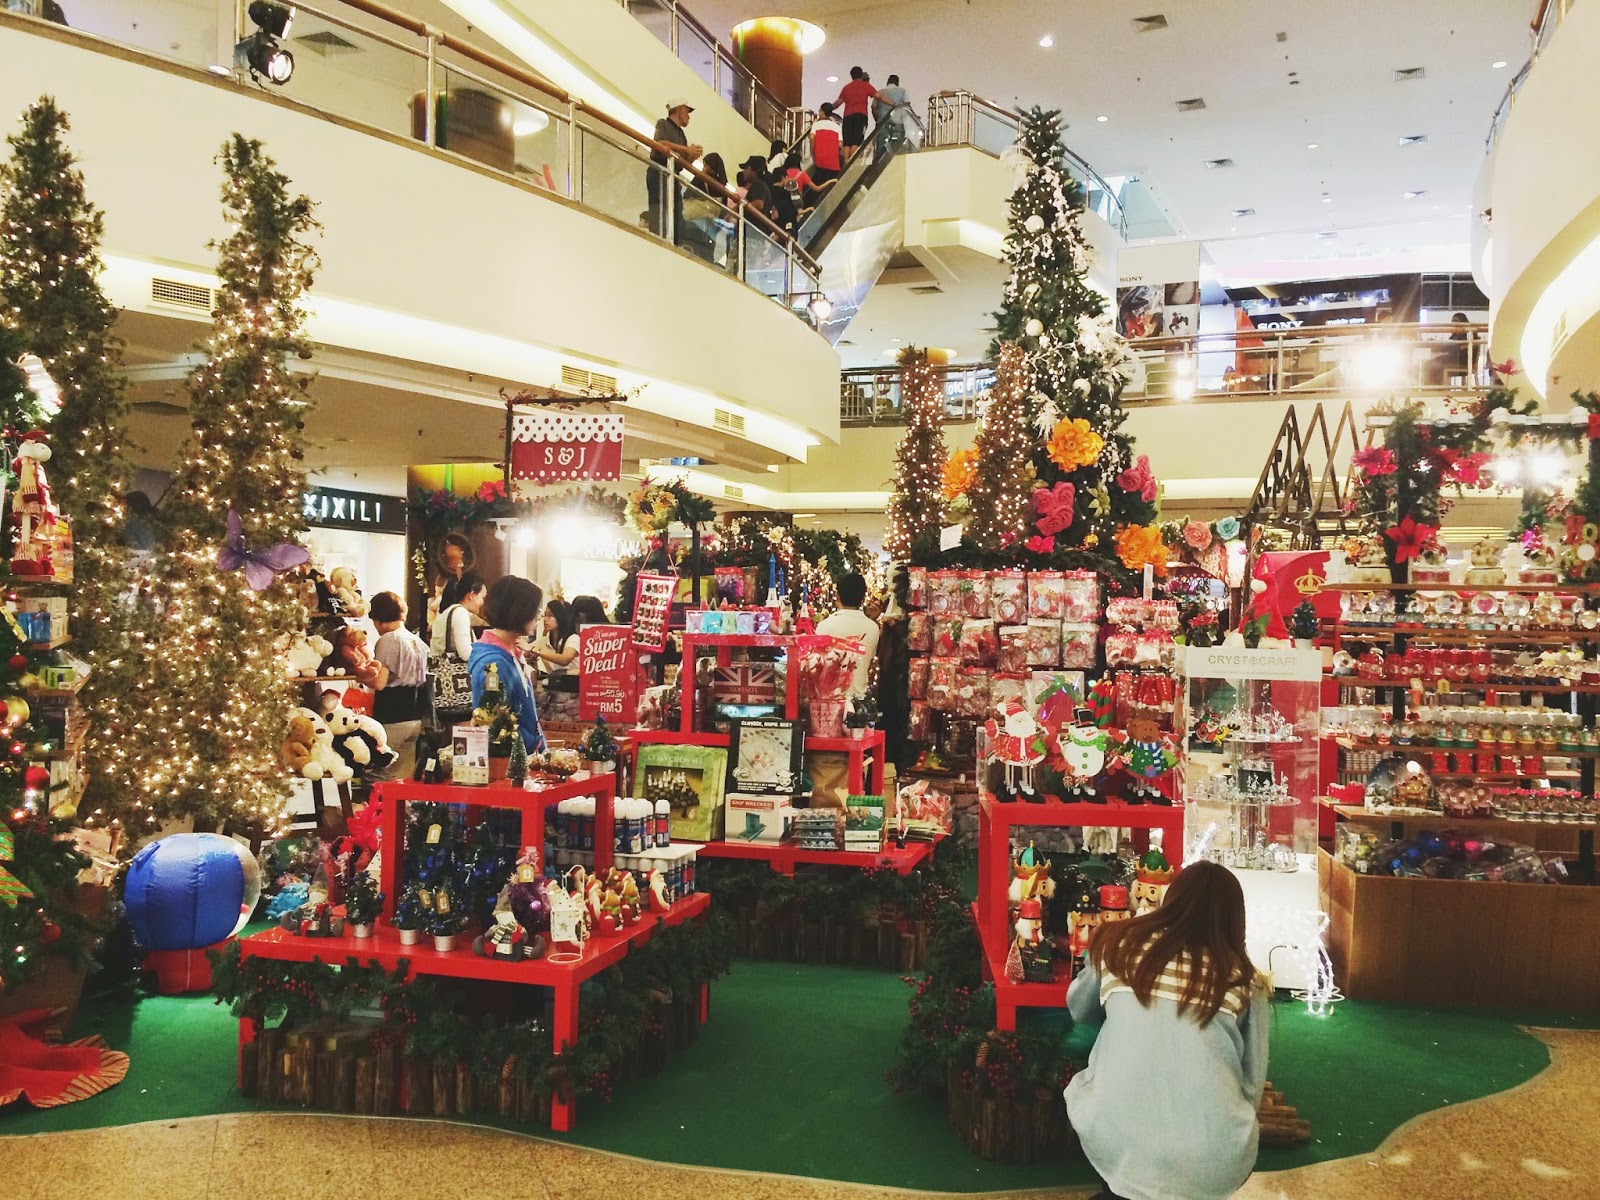 Christmas Booth Ideas Christmas Decorations Tgif Midvalley Melissat